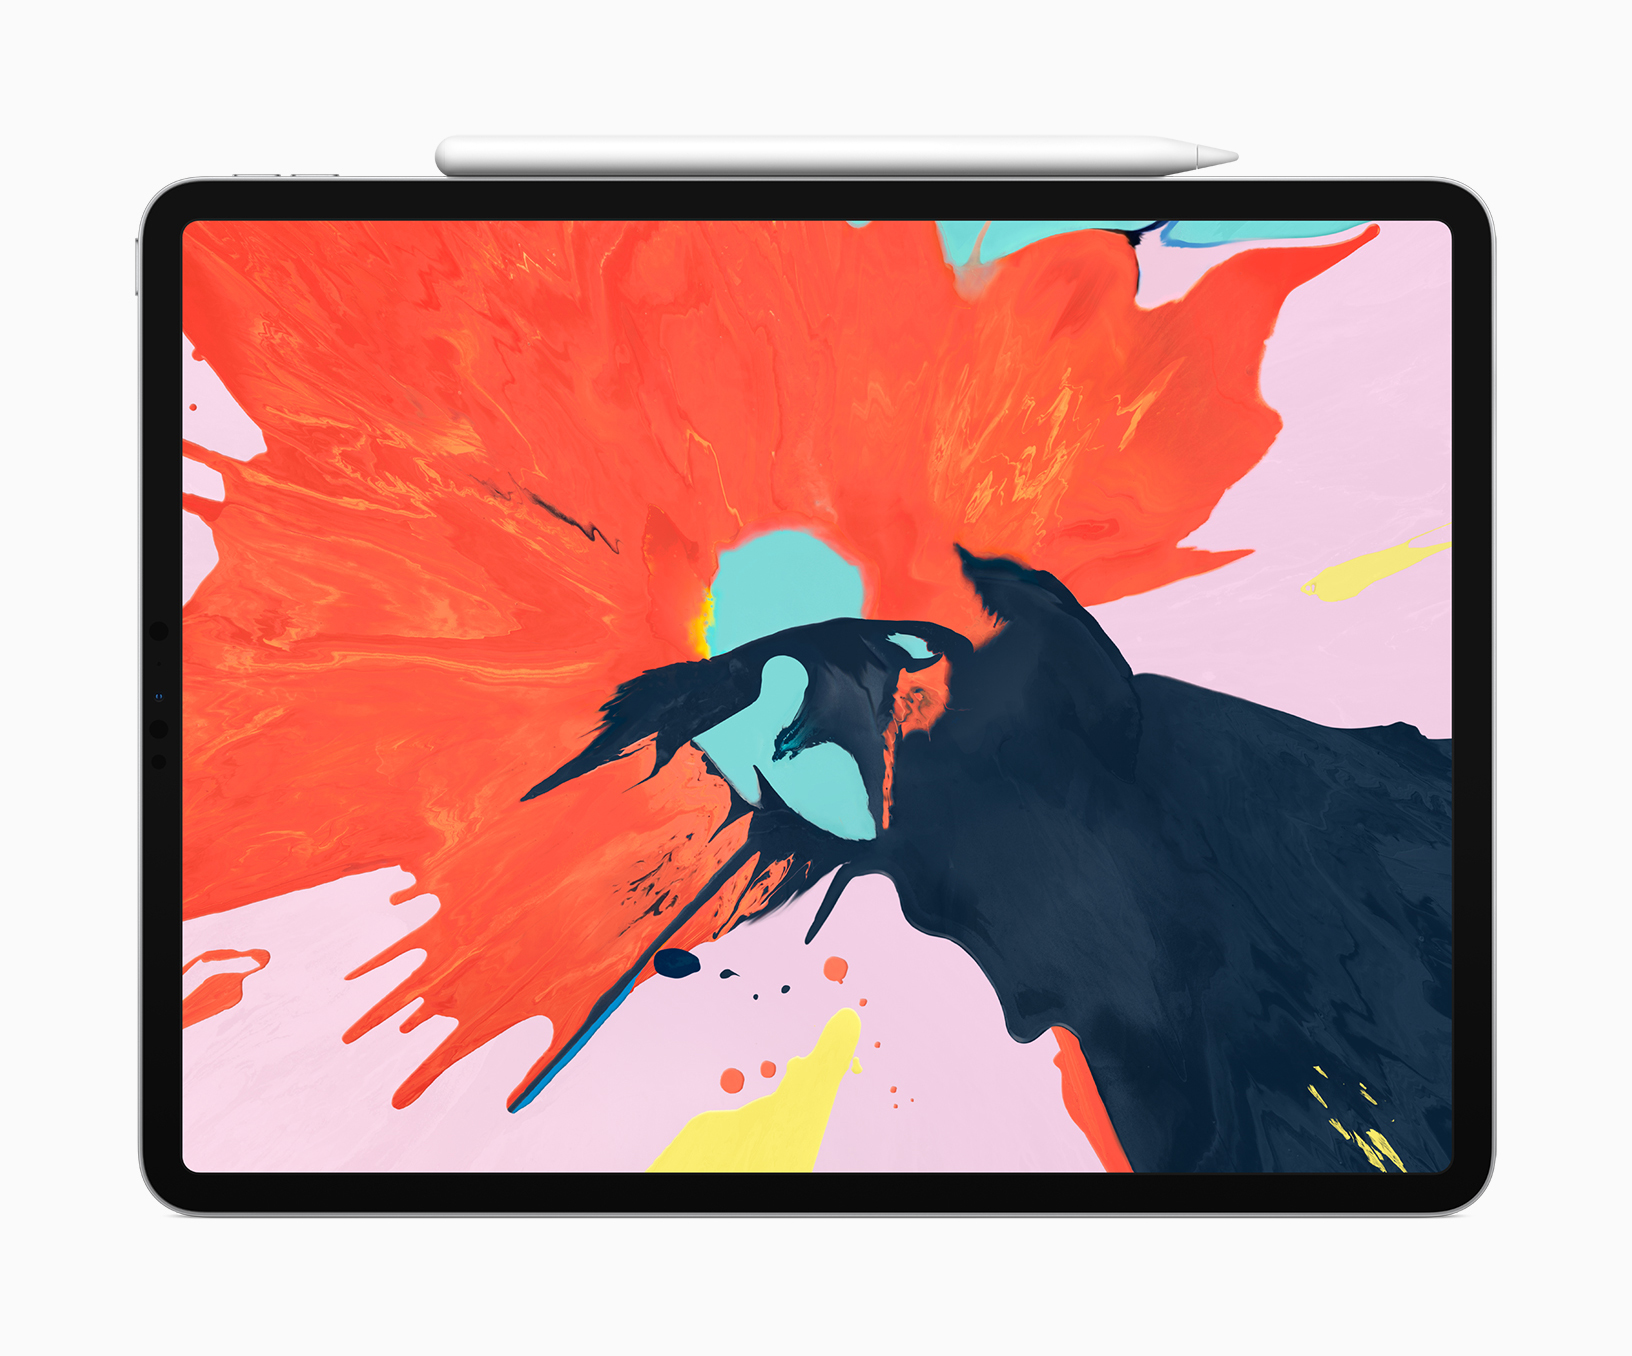 ipad-pro_next-gen_10302018_big.jpg.large_2x.jpg